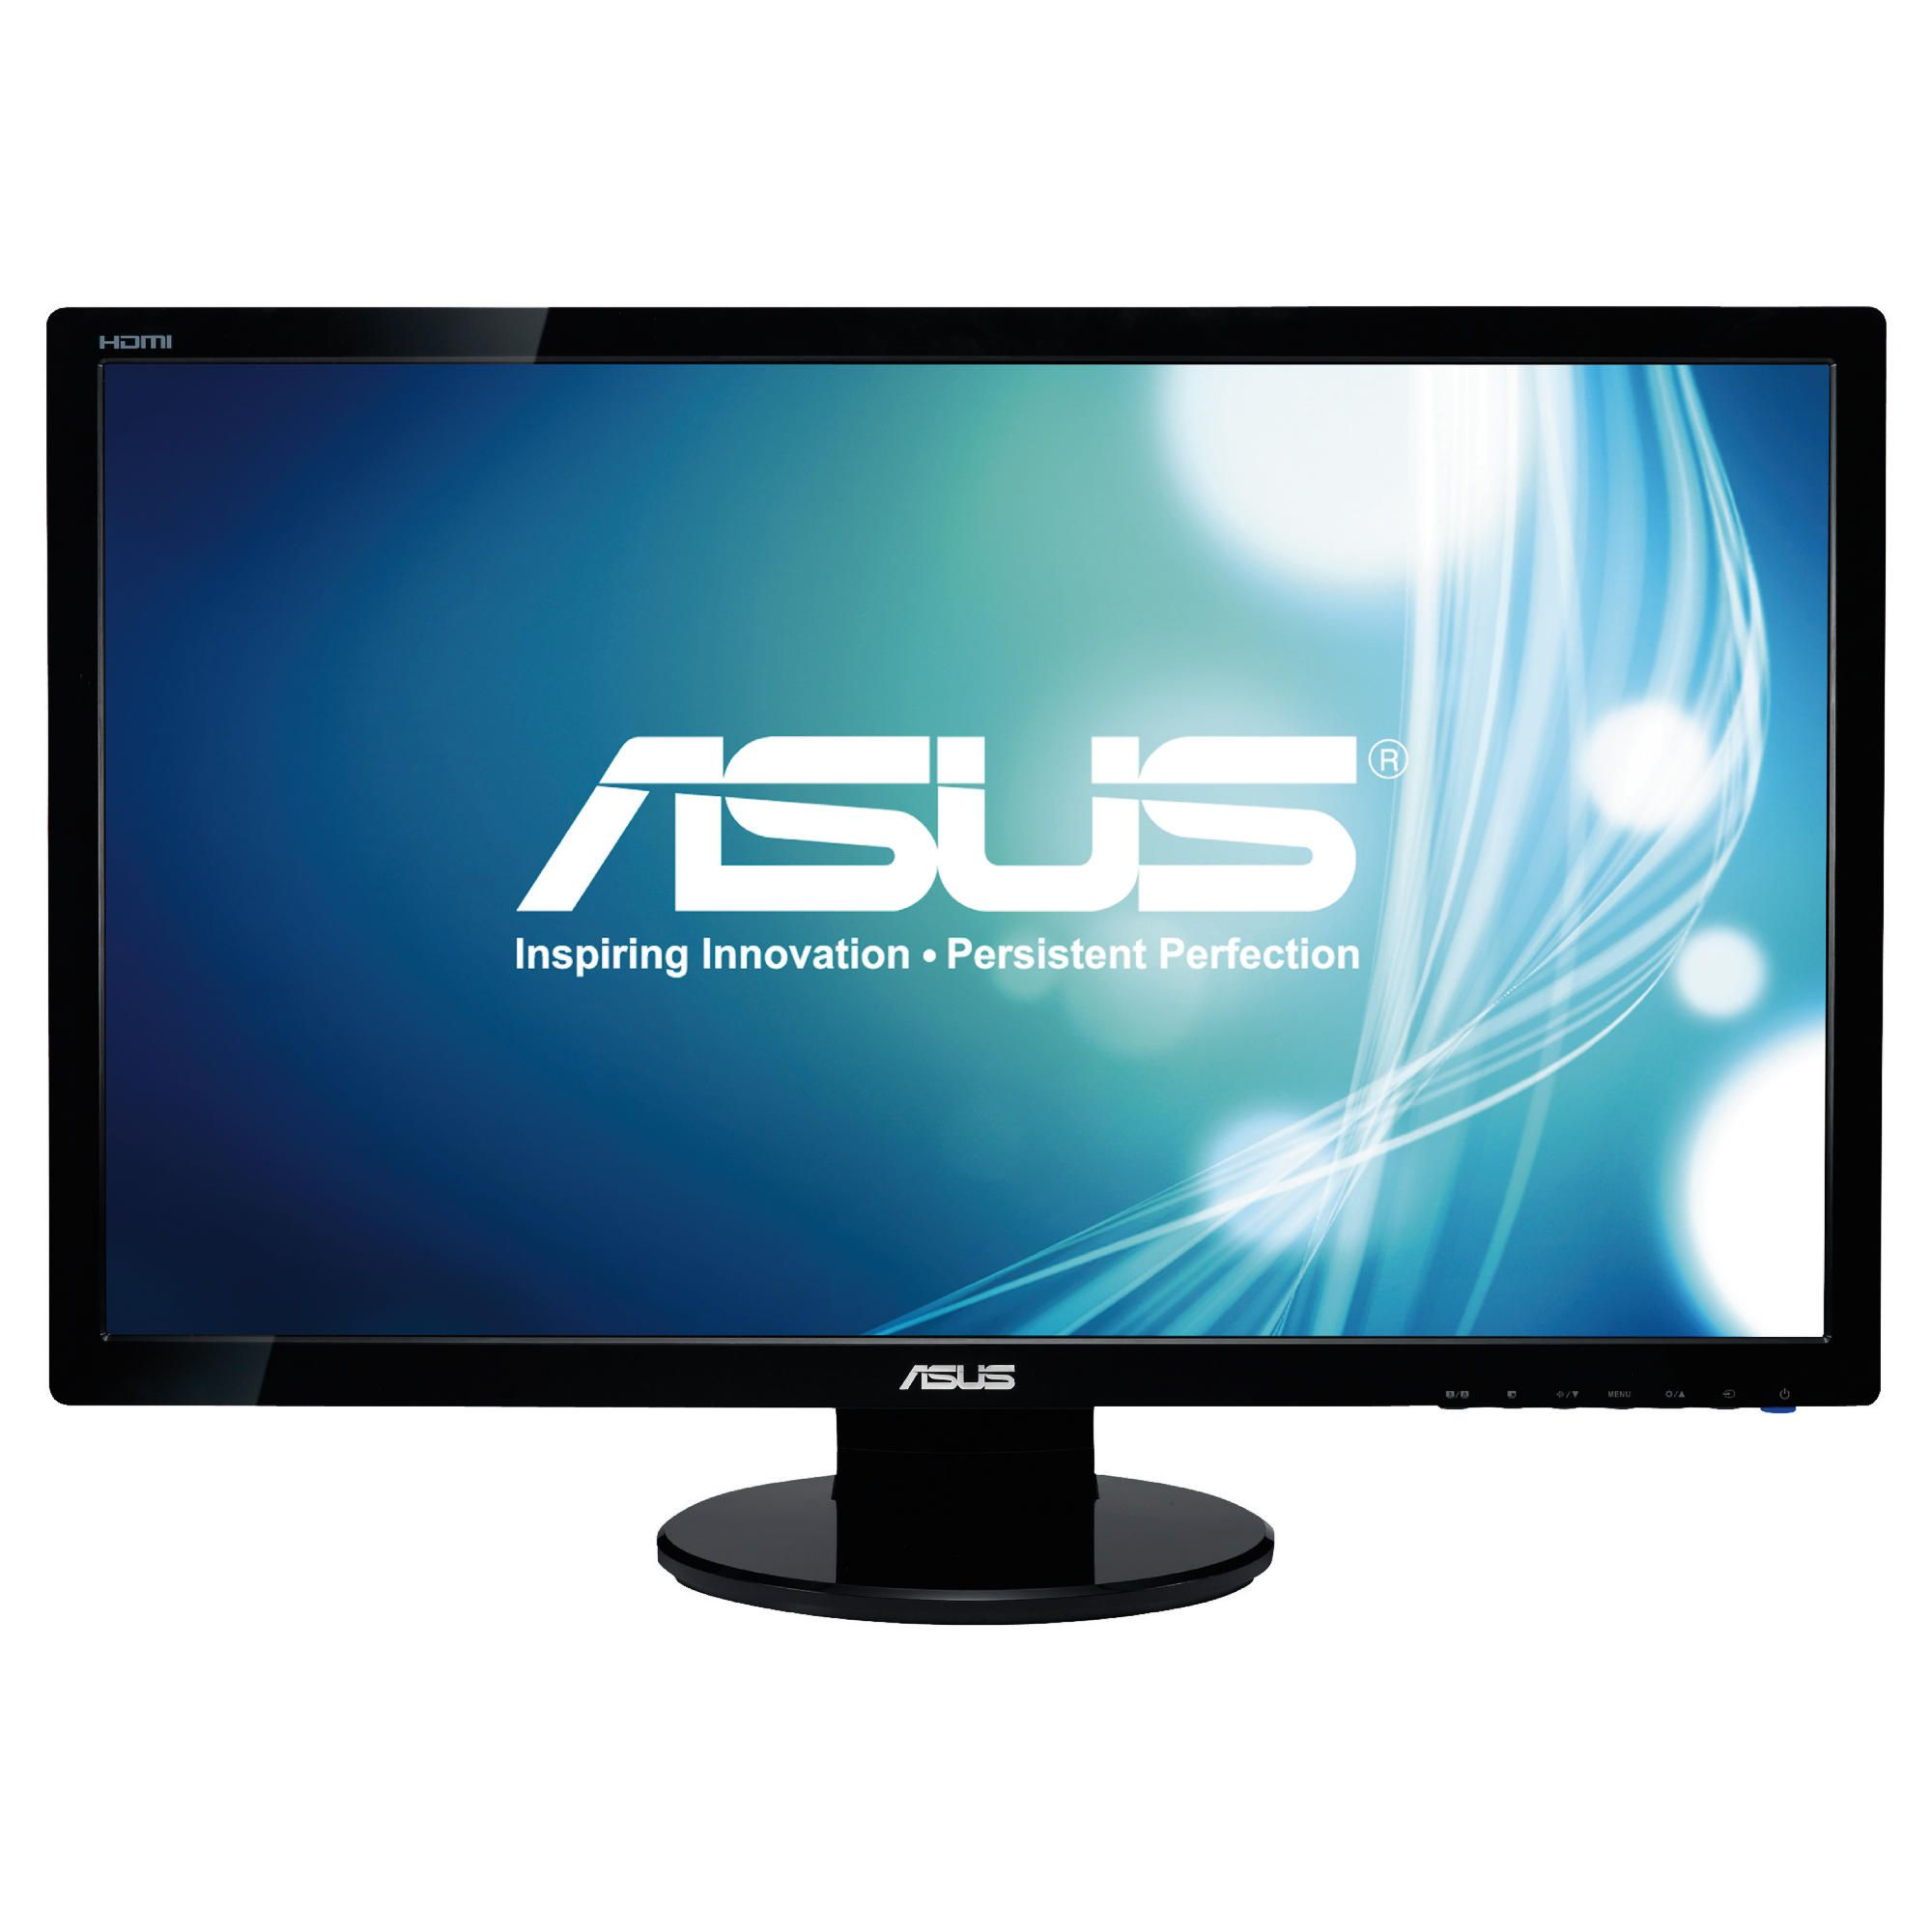 ASUS VE278Q 27'' LCD Monitor Black at Tescos Direct